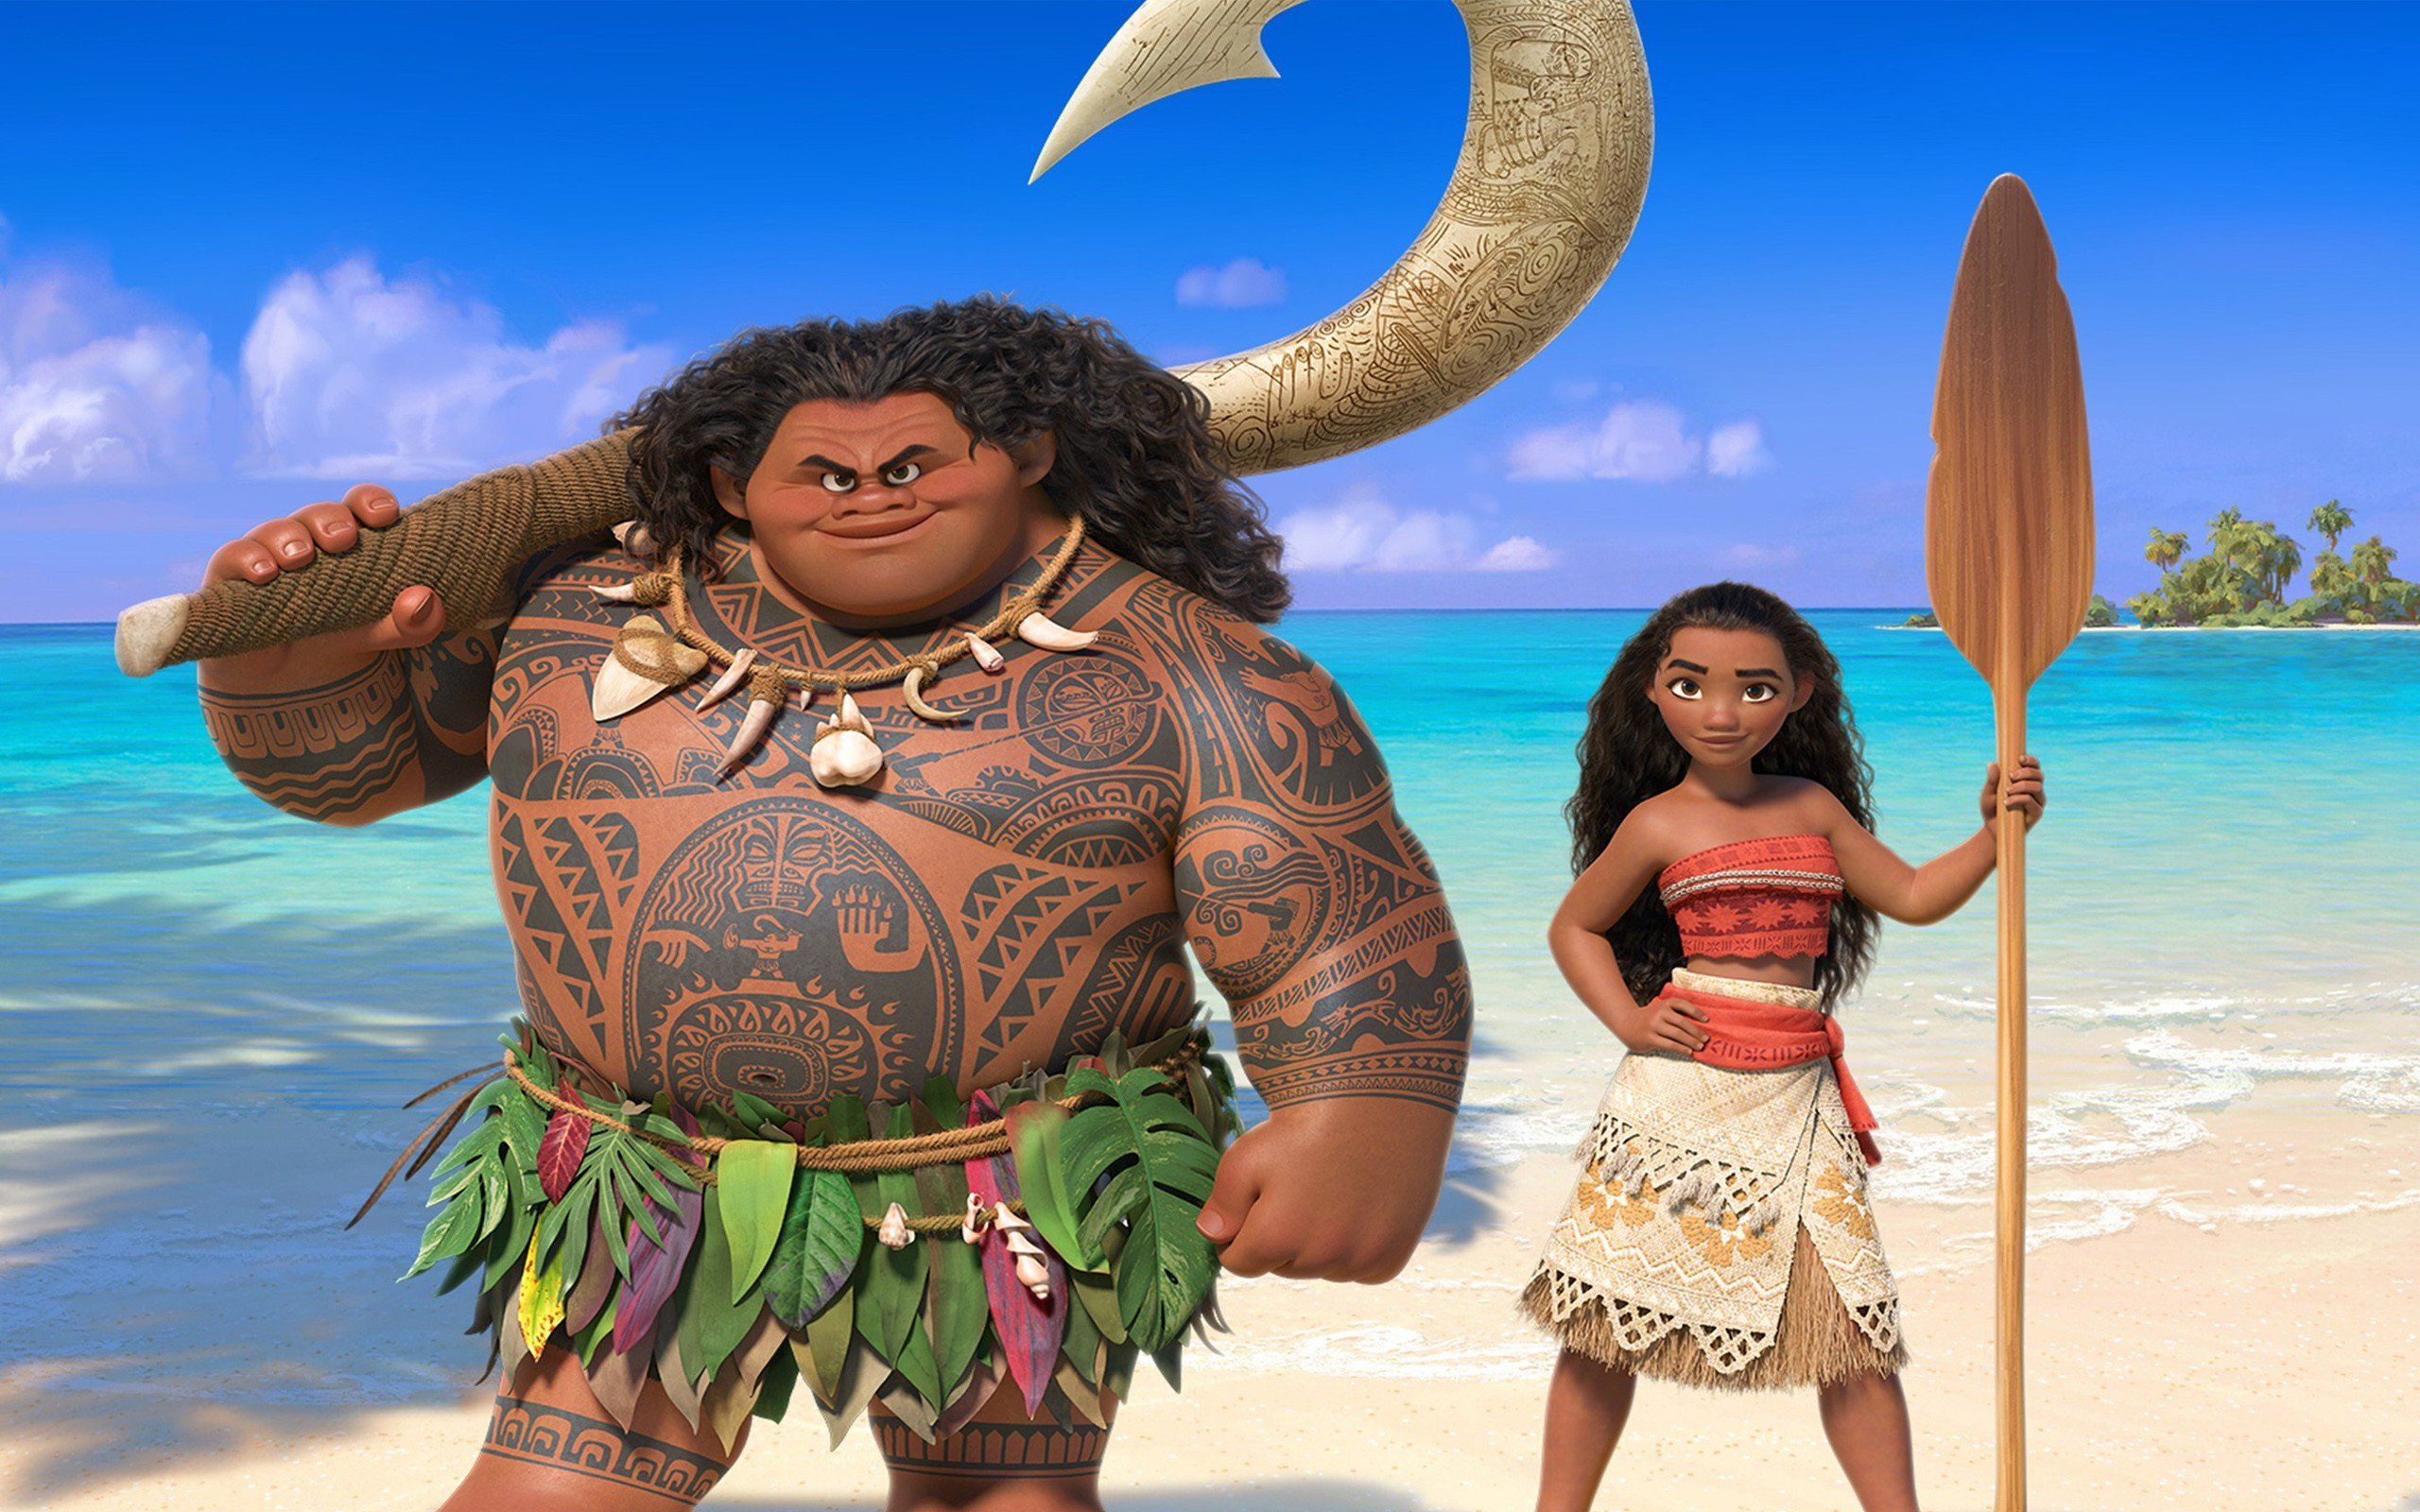 Animation Movie Love Wallpaper : Moana Movie, HD Movies, 4k Wallpapers, Images, Backgrounds, Photos and Pictures